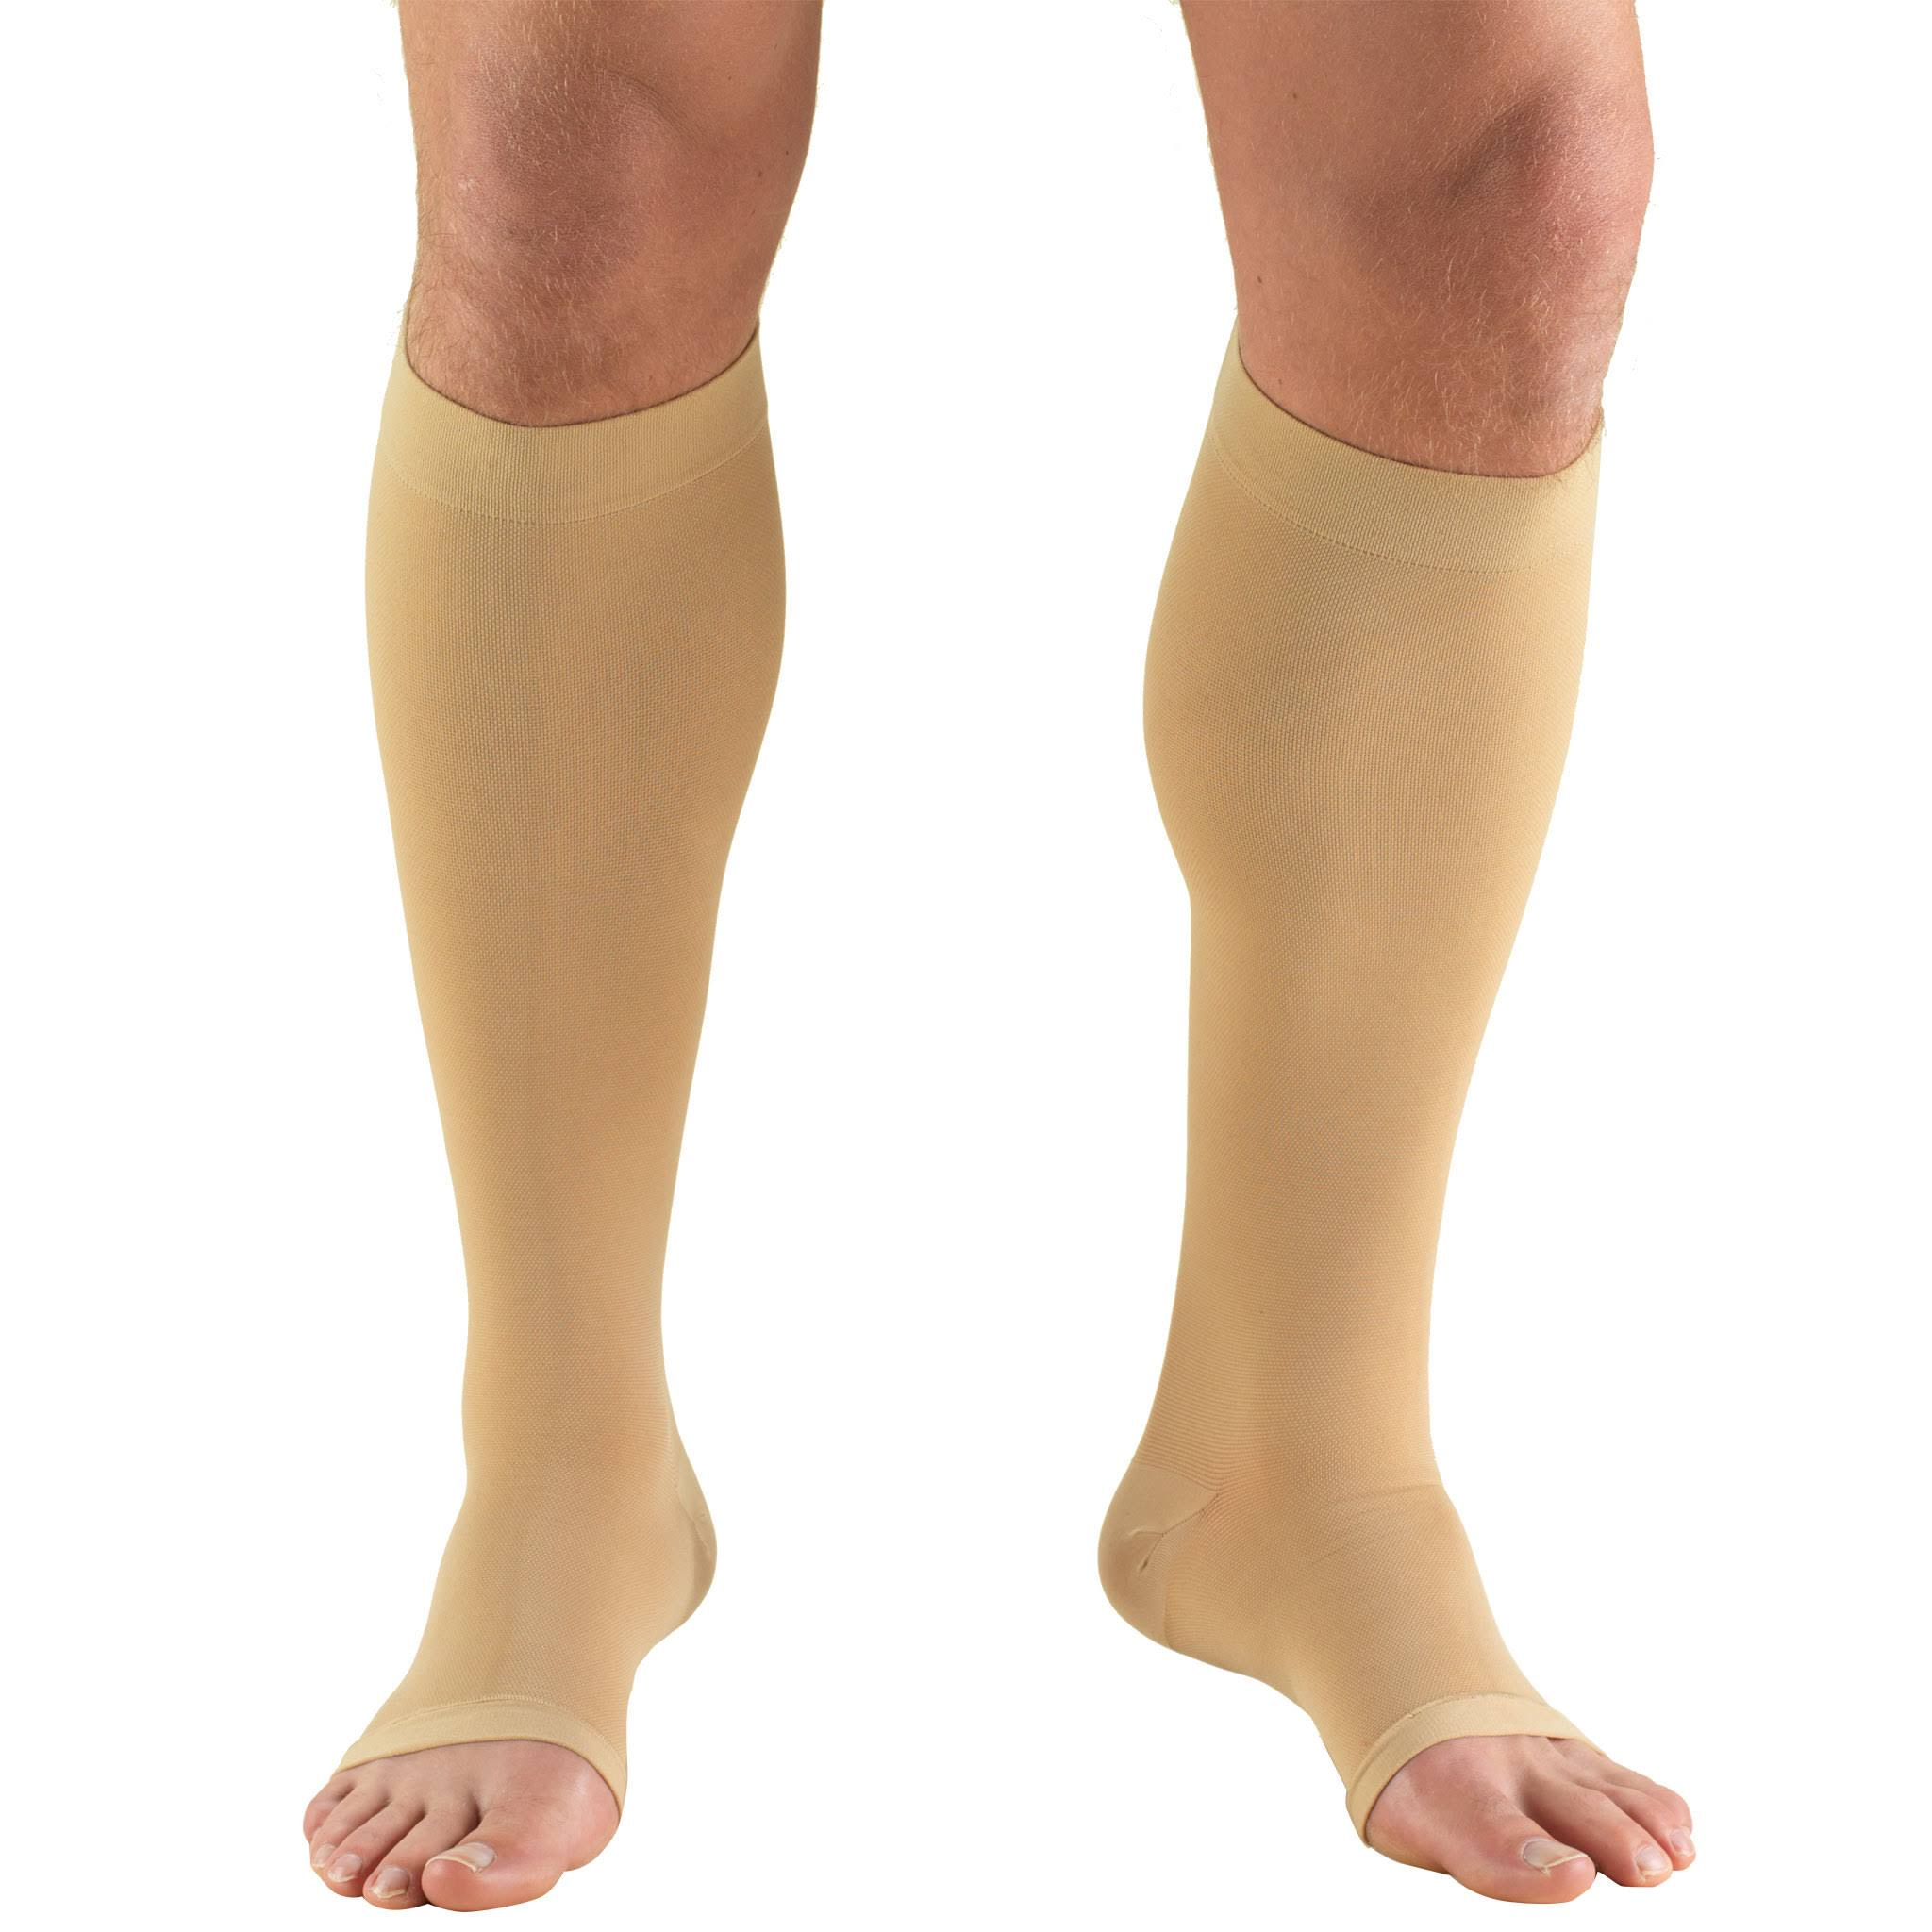 Truform Knee High Open Toe Compression Stockings - Beige, Small, 15-20mmHg